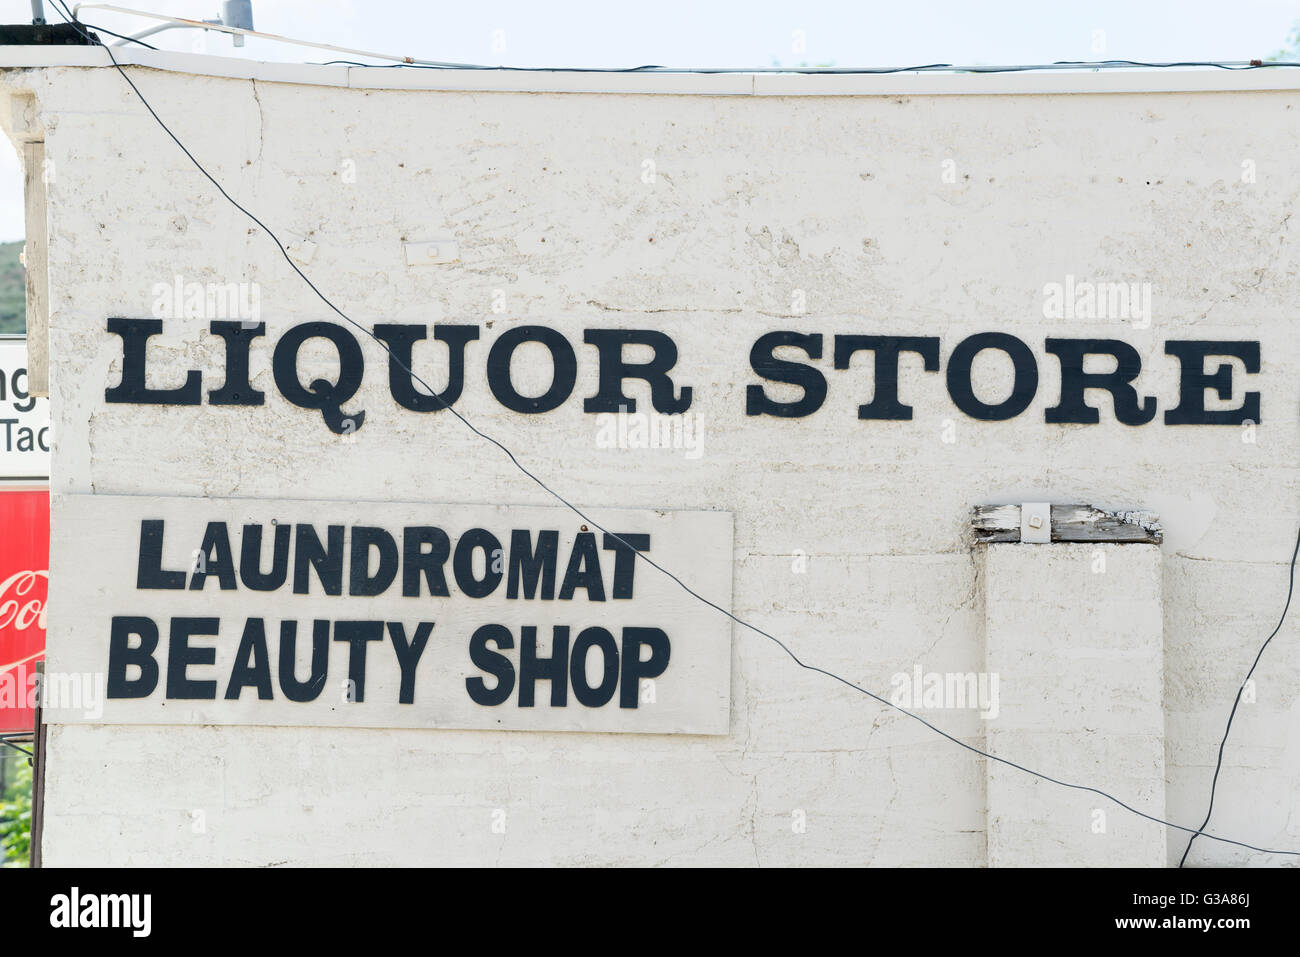 Combination liquor store, laundromat and beauty shop in the small town of Huntington, Oregon. - Stock Image